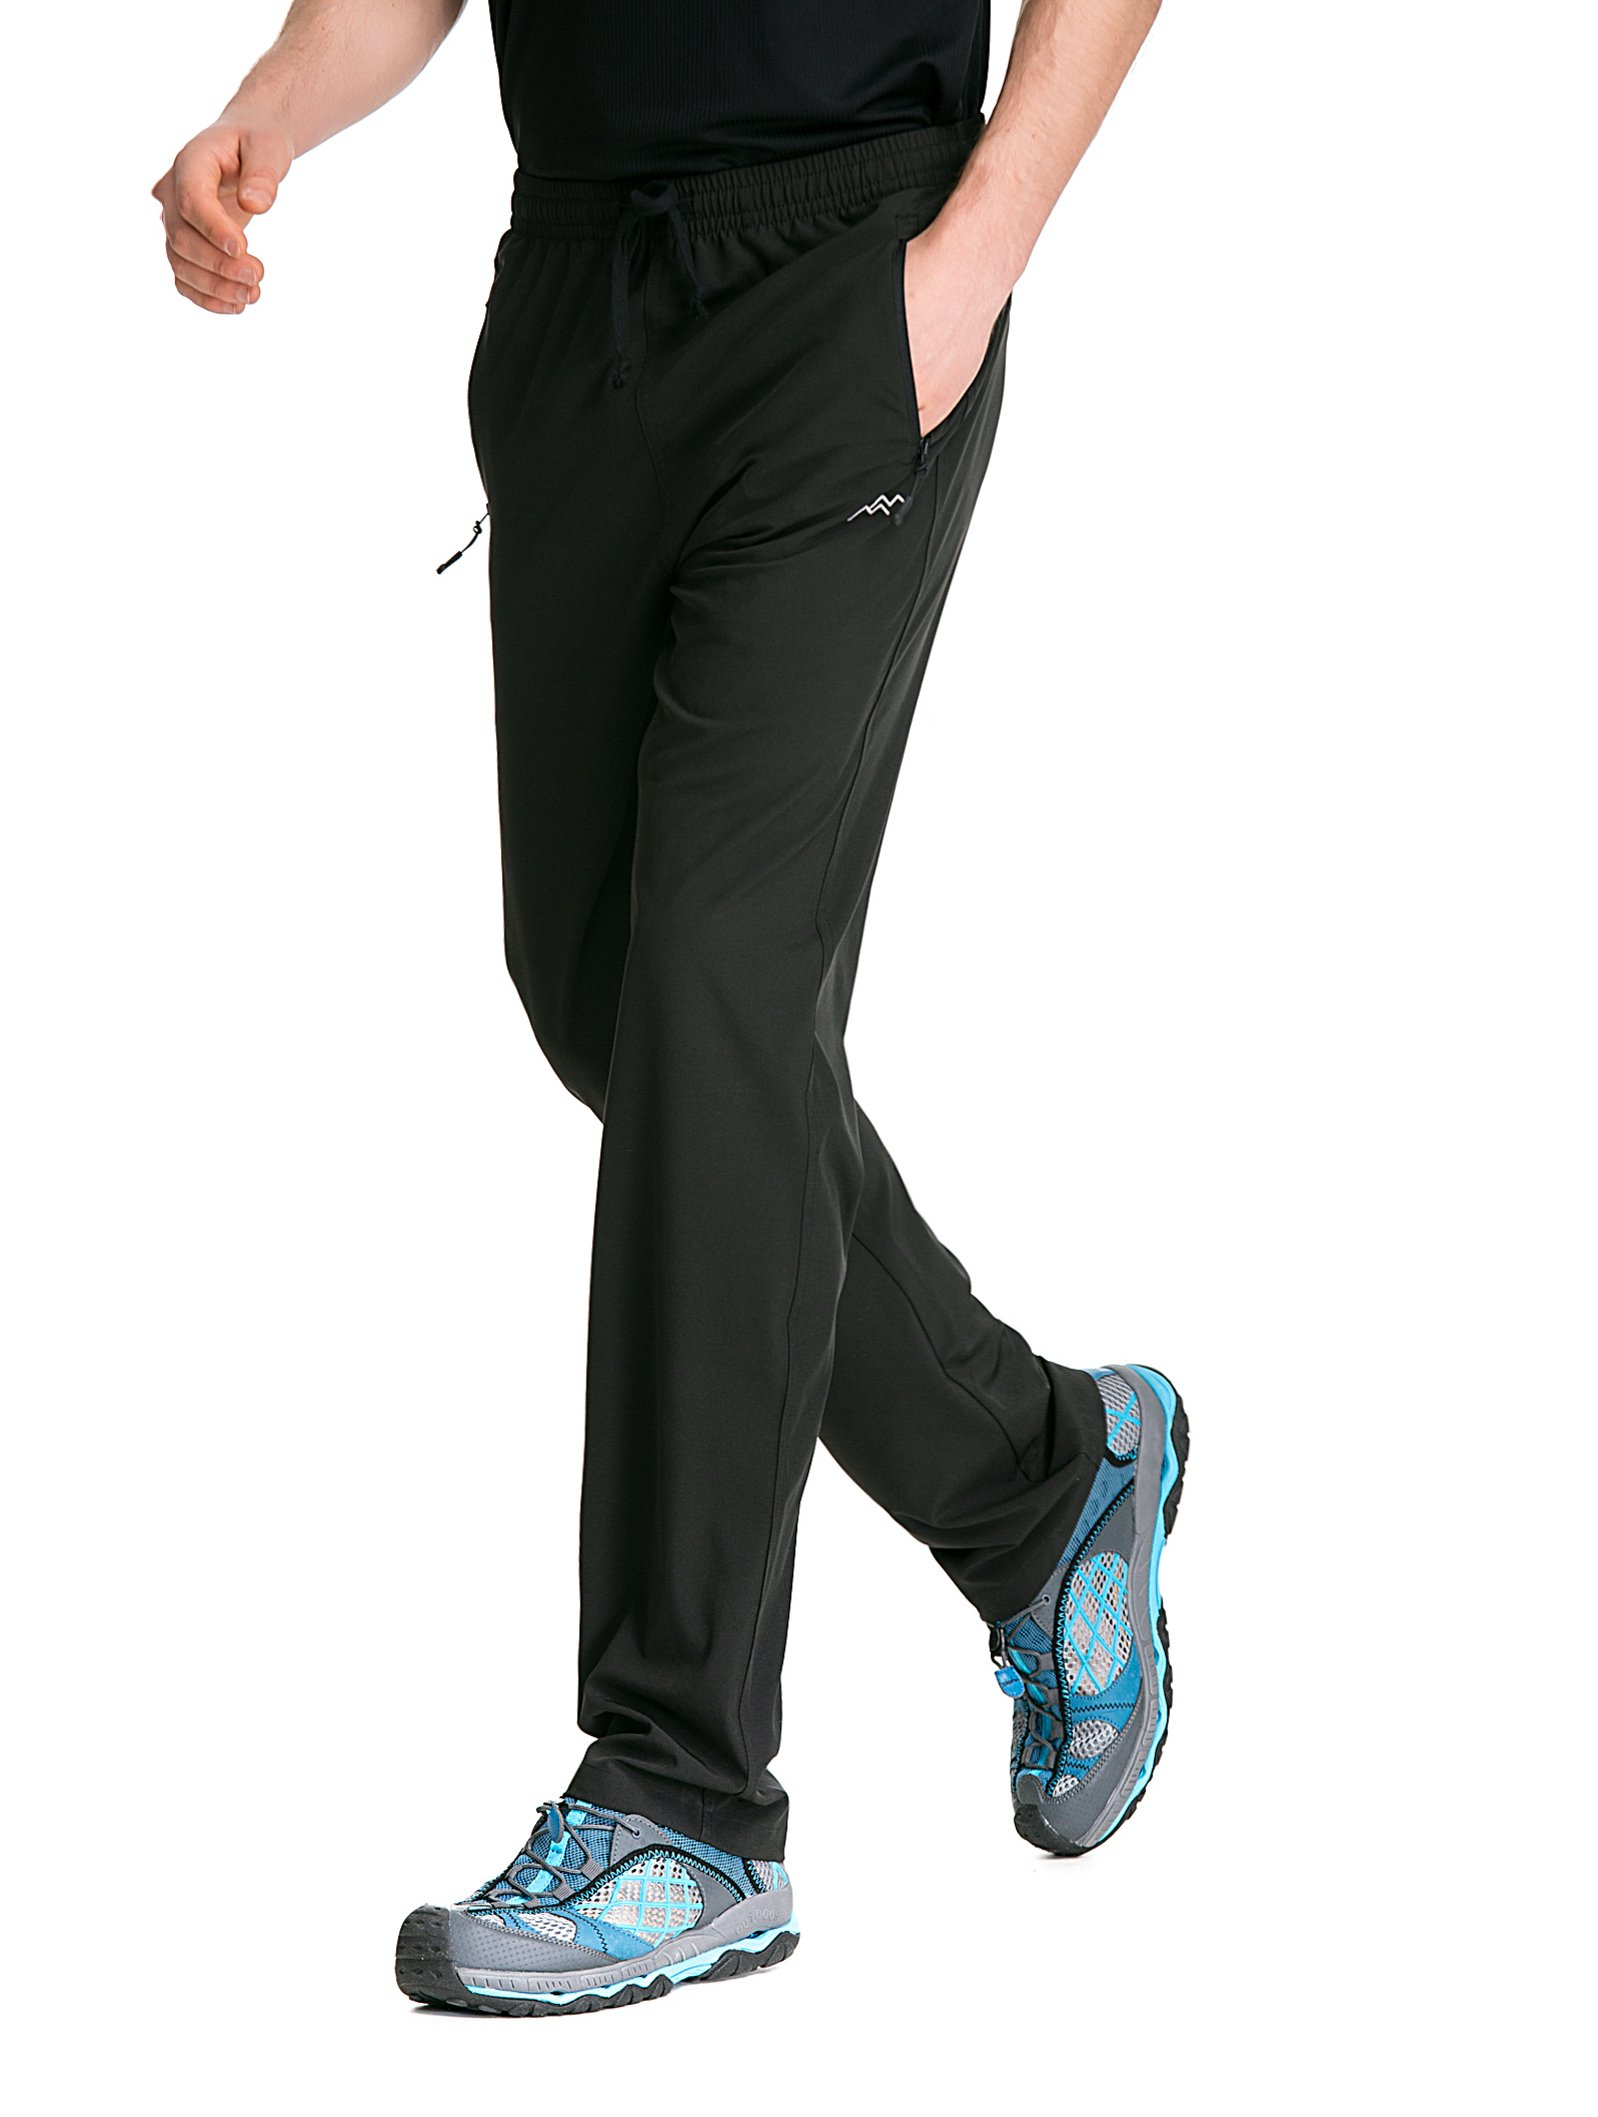 Trailside Supply Co. Men's Light Weight Stretch Elastic-Waist Drawstring Track Running Gym Pants Large Black by Trailside Supply Co. (Image #3)